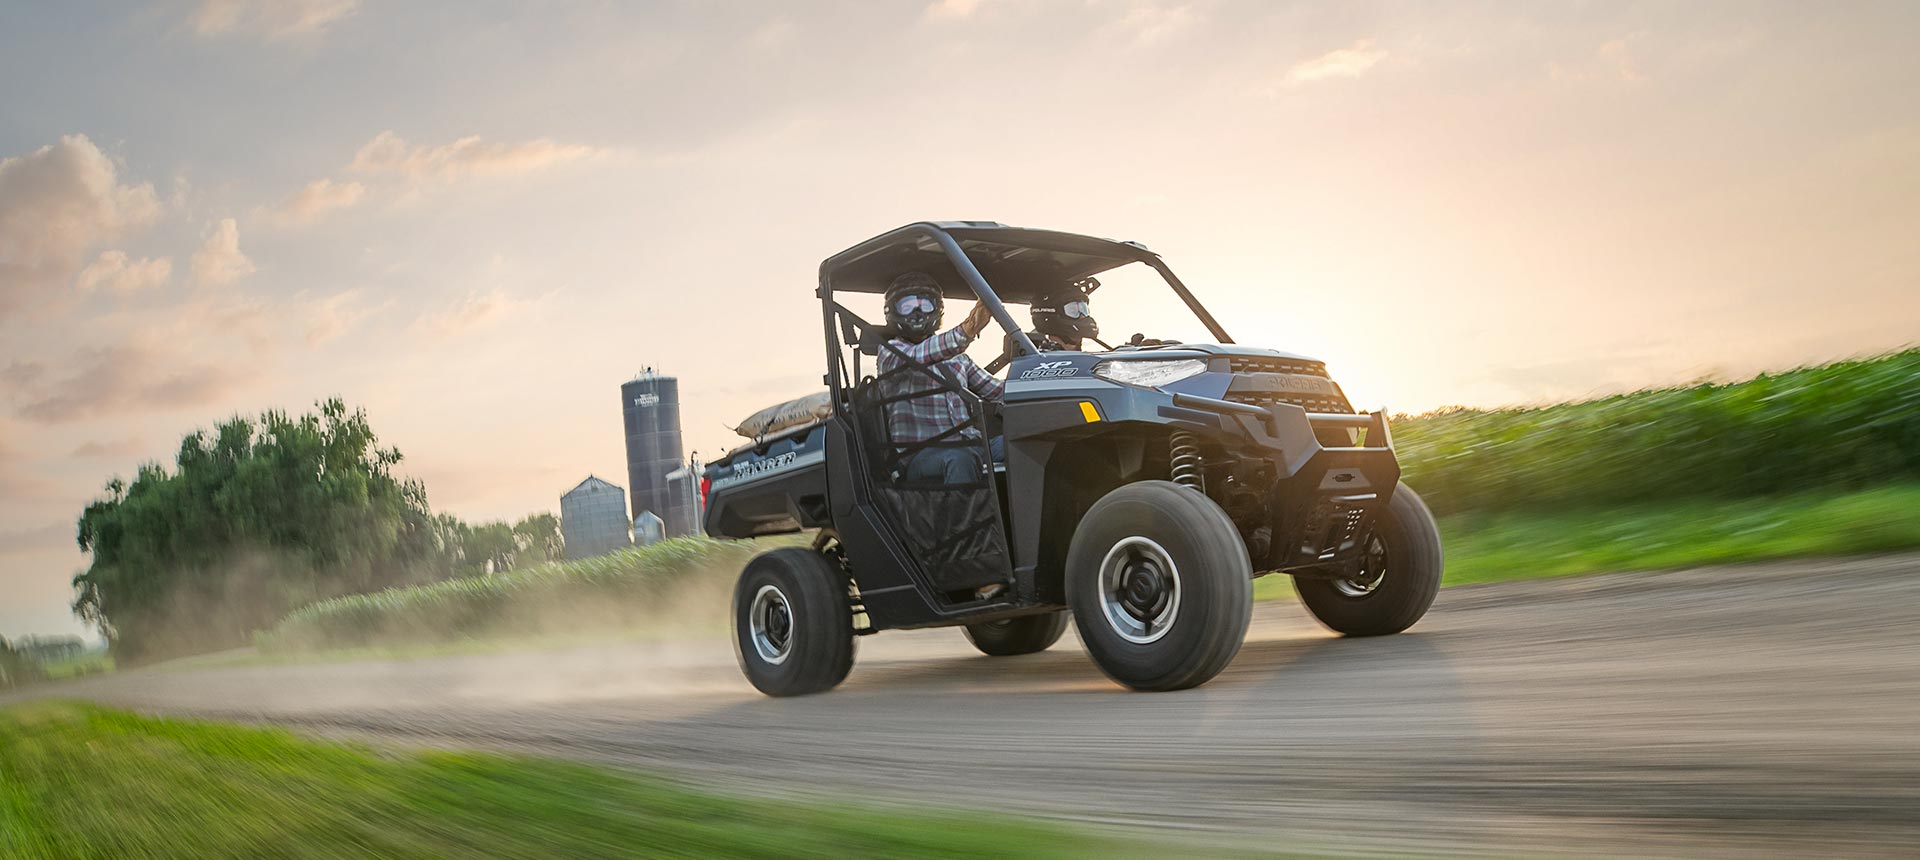 2019 Polaris Ranger XP 1000 EPS in Katy, Texas - Photo 11